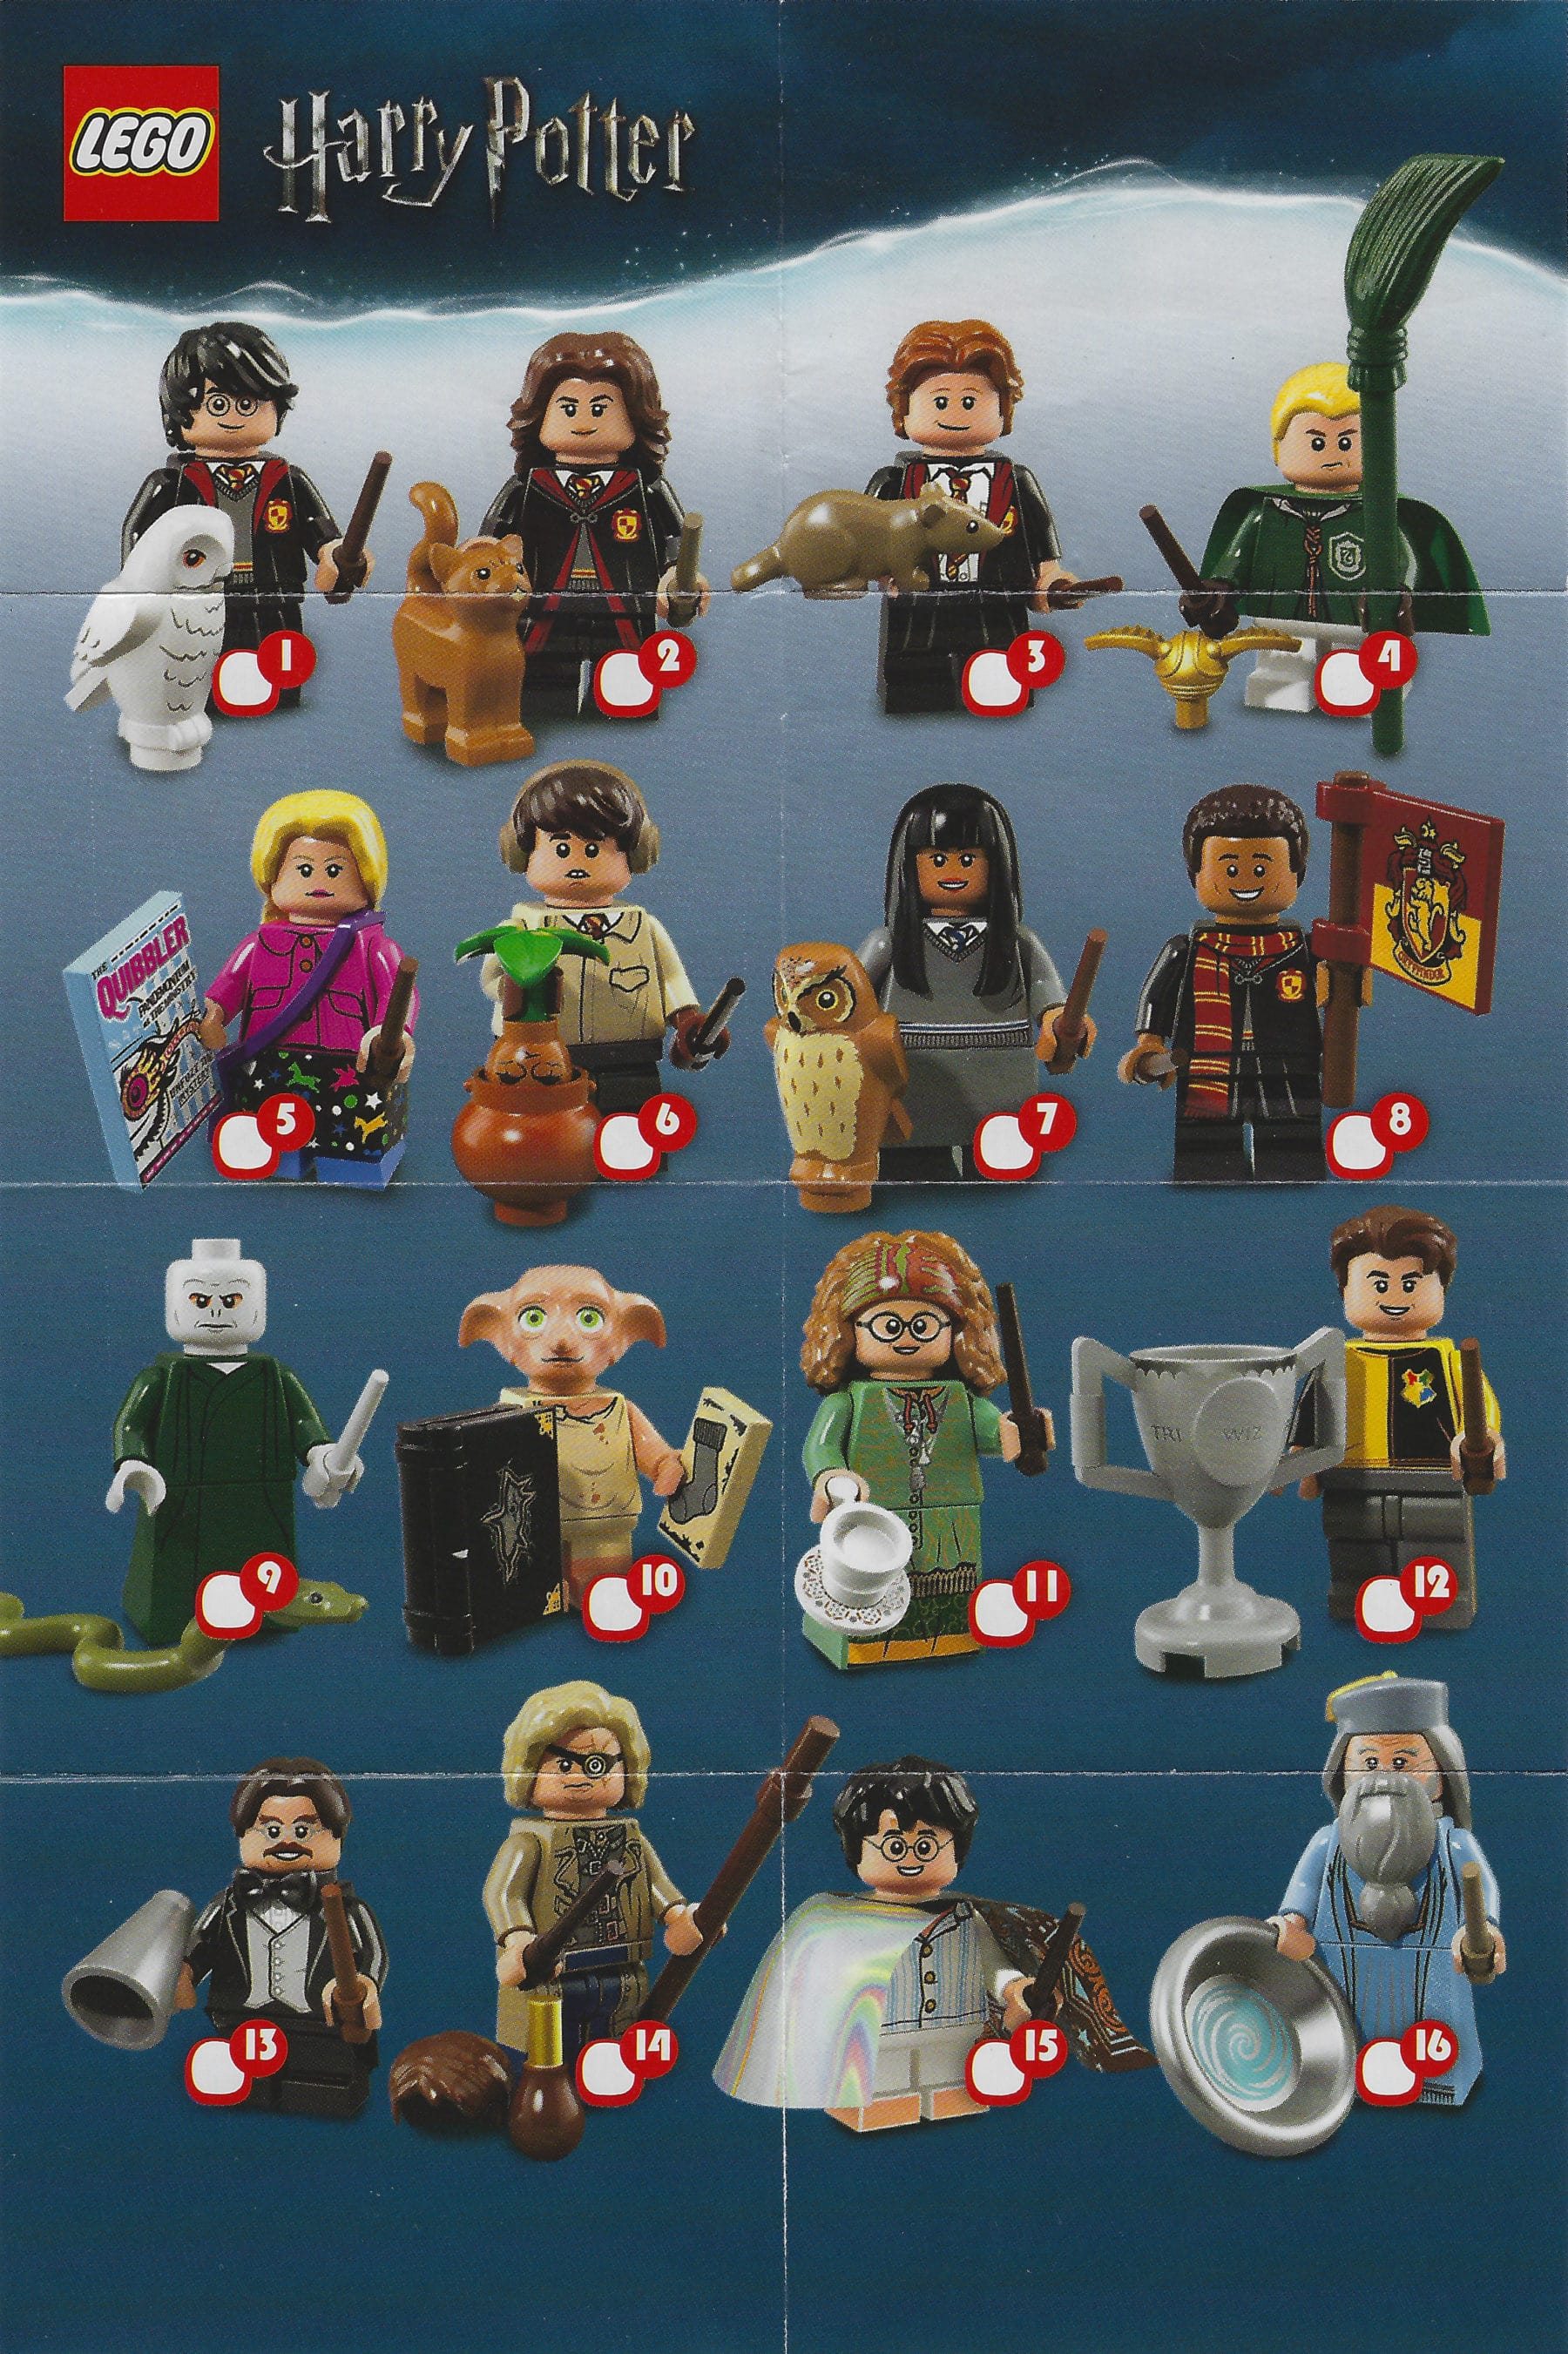 LEGO 71022 Harry Potter CMF Beipackzettel